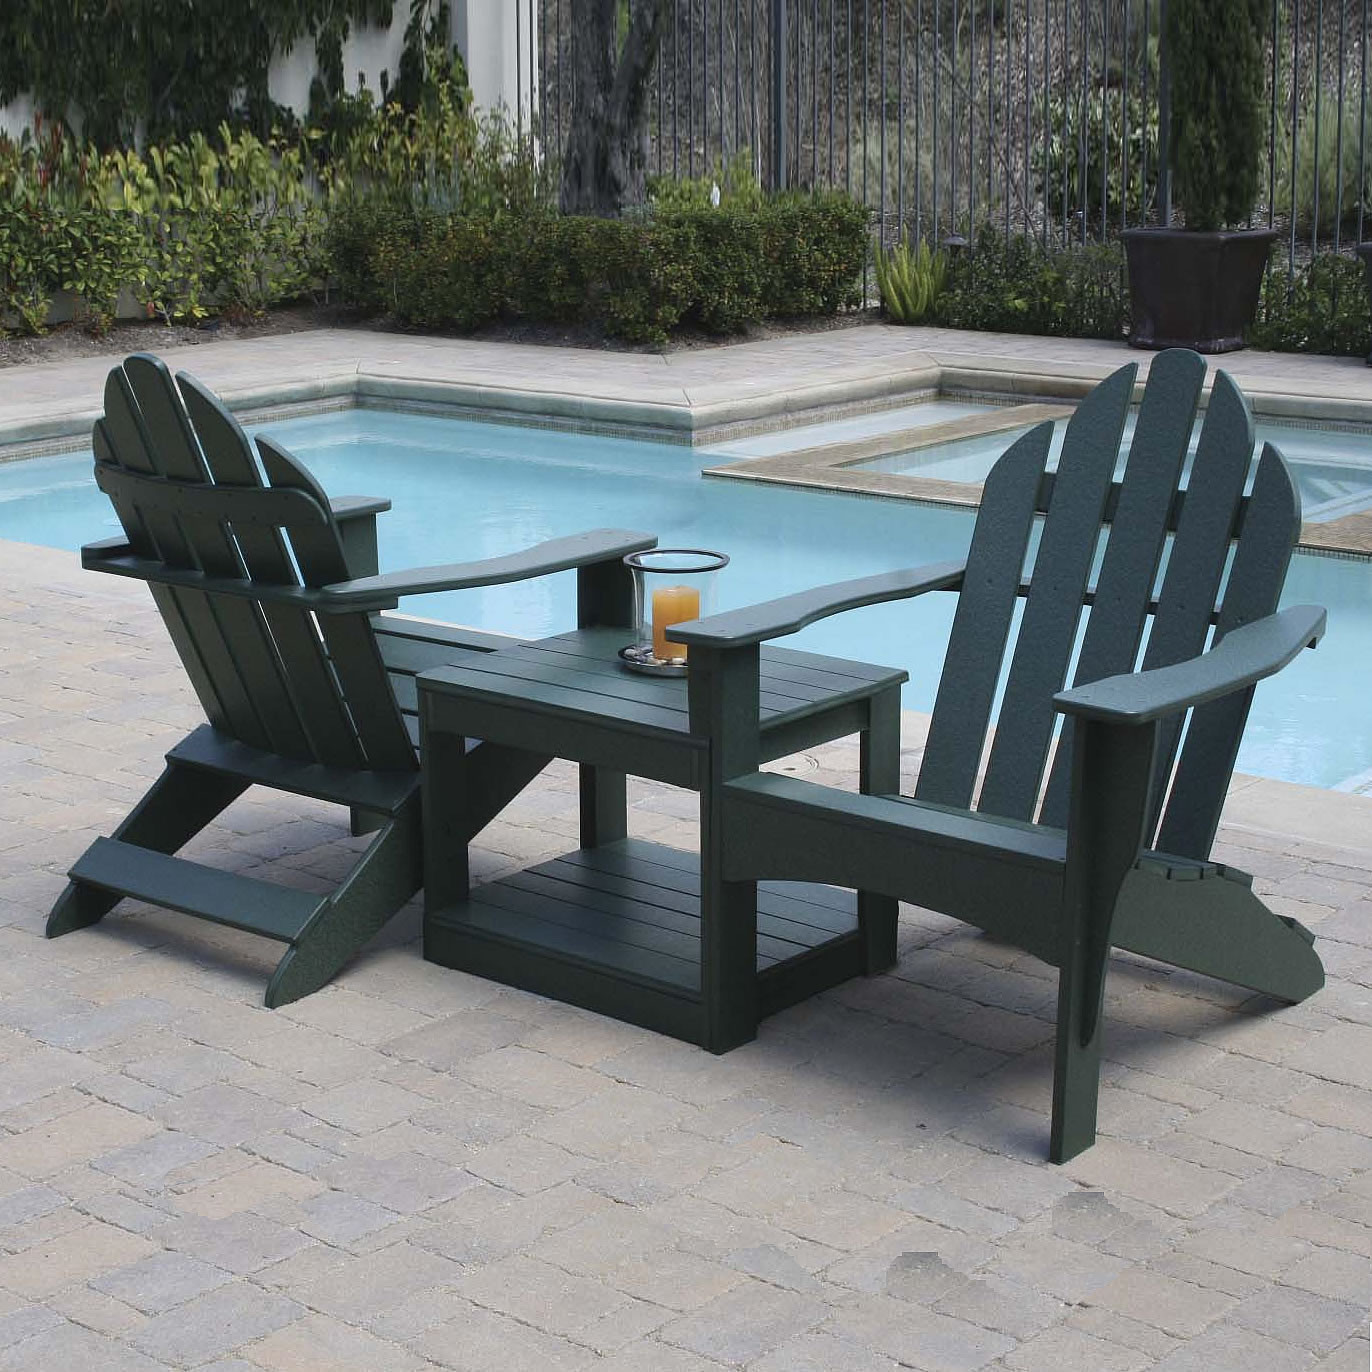 Eagle One   Double Adirondack Chair With Table